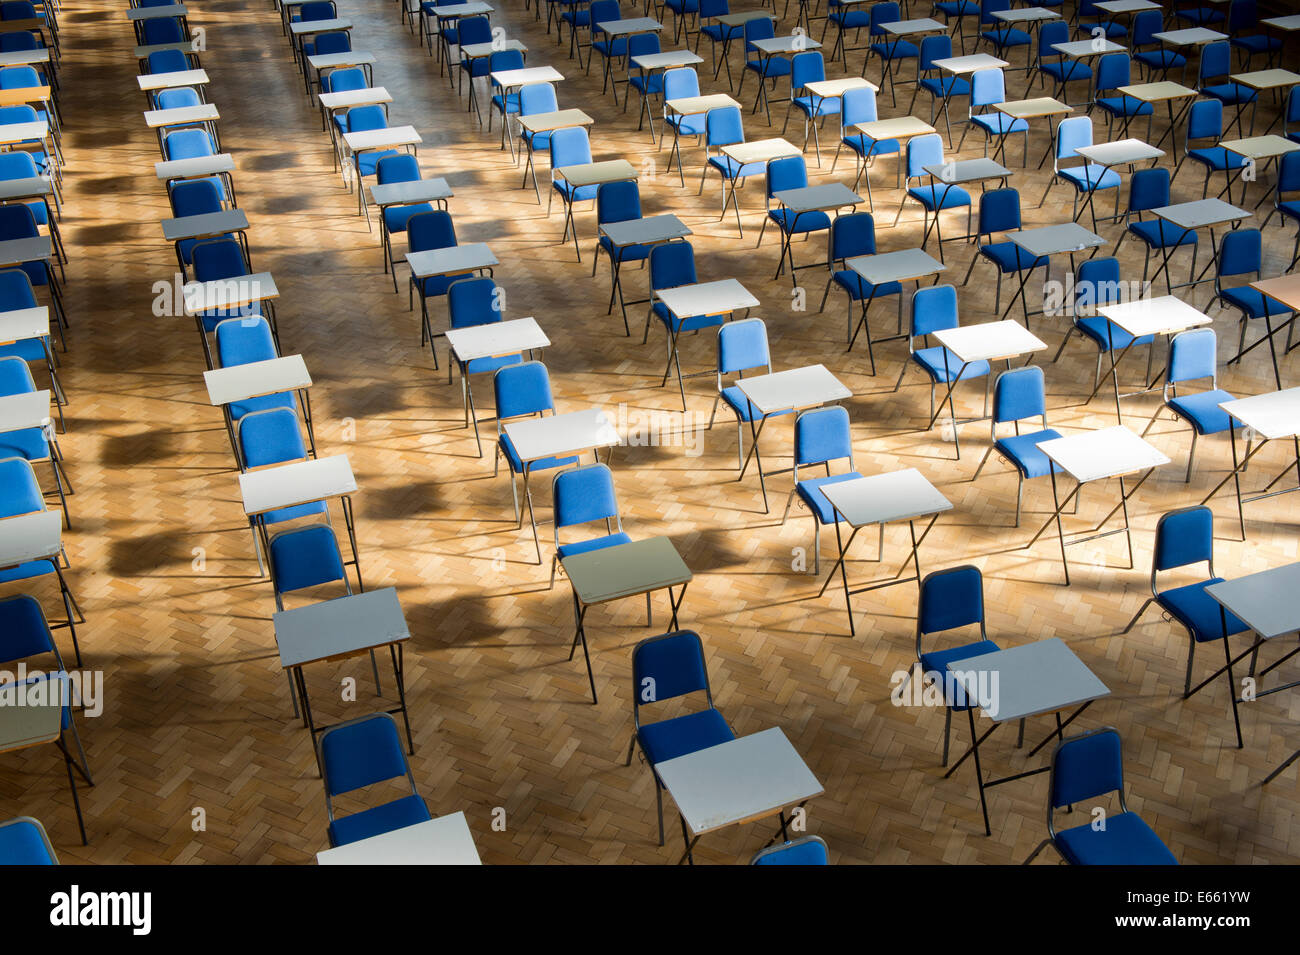 Tables and chairs are neatly lined up for exams in Whitworth Hall building at The University of Manchester (Editorial - Stock Image